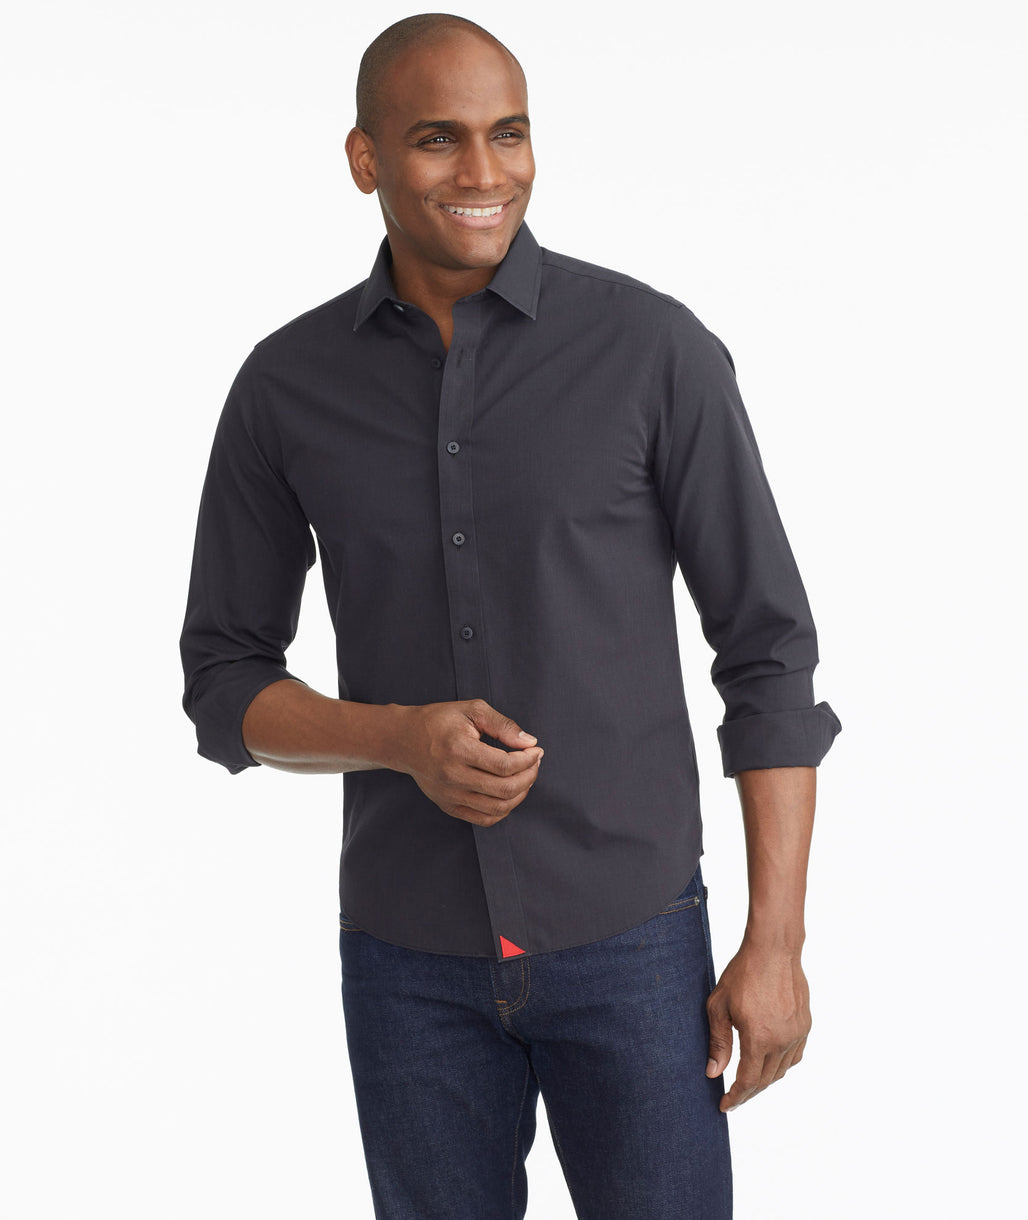 Model wearing a Black Wrinkle-Free Black Stone Shirt